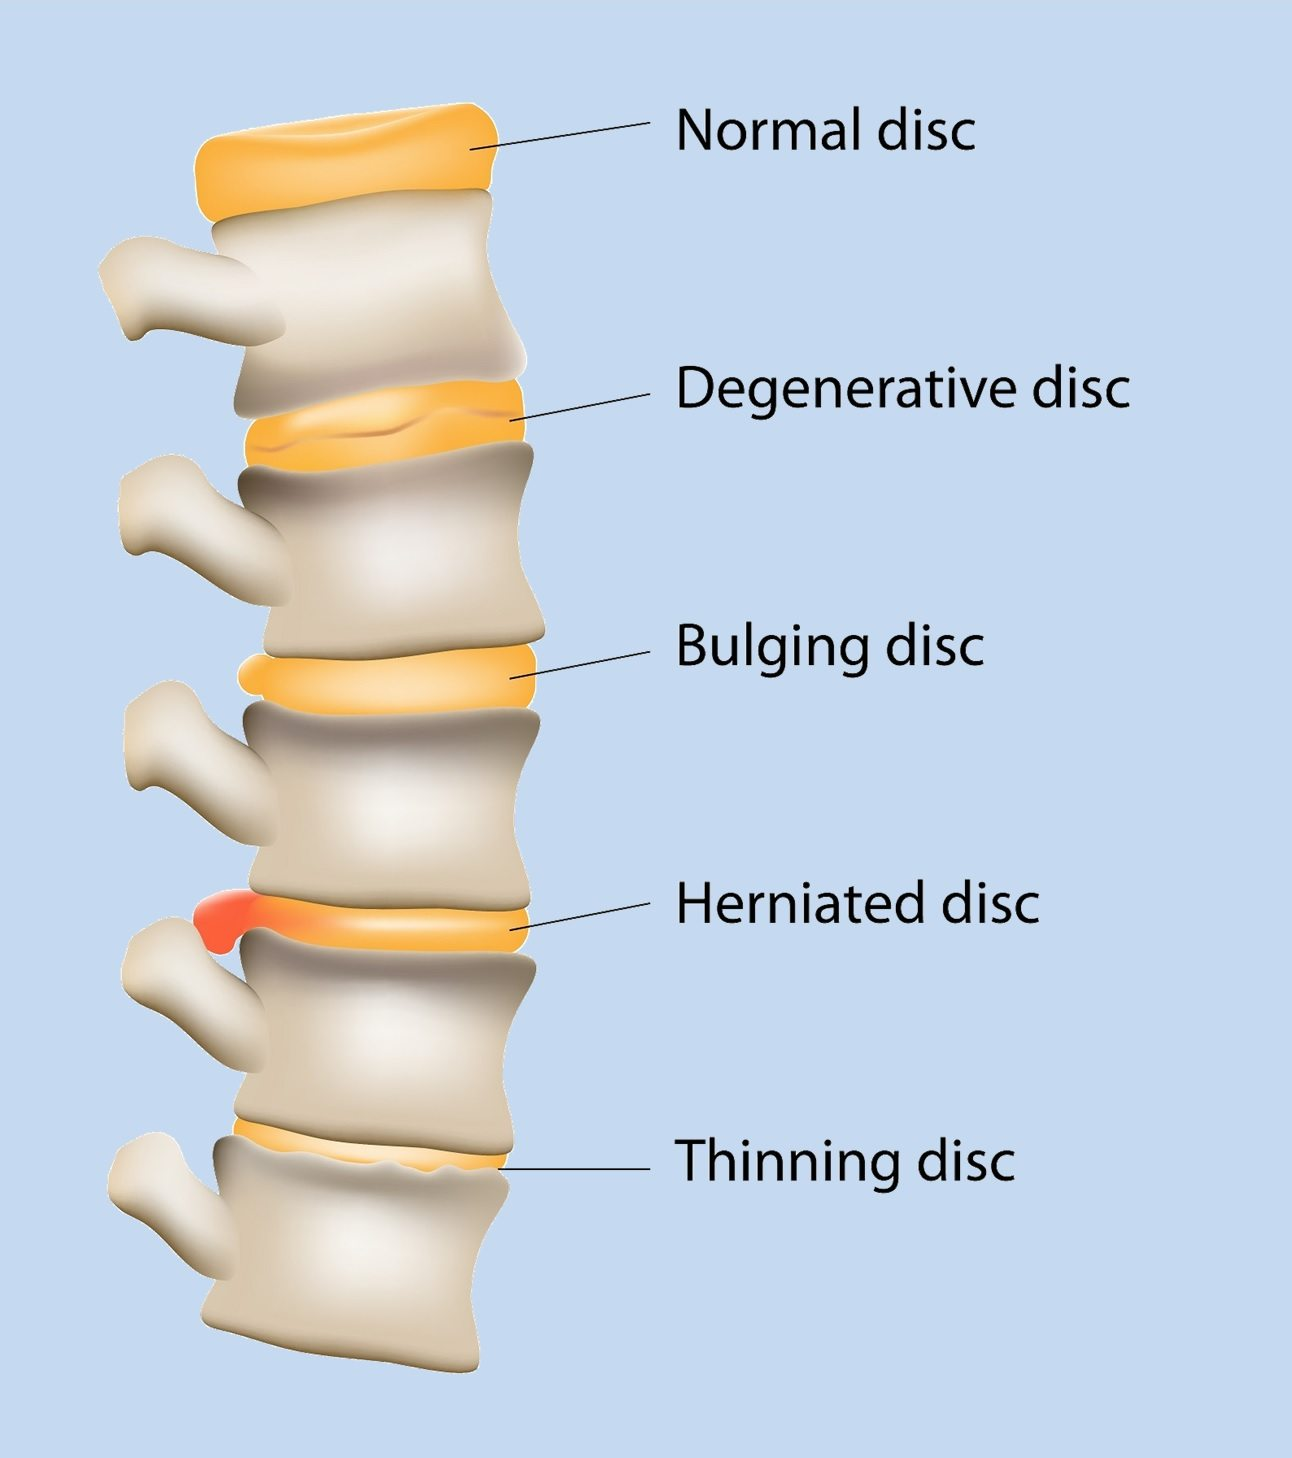 Cincinnati Ohio Degenerative Disc Disease Disk Disorder